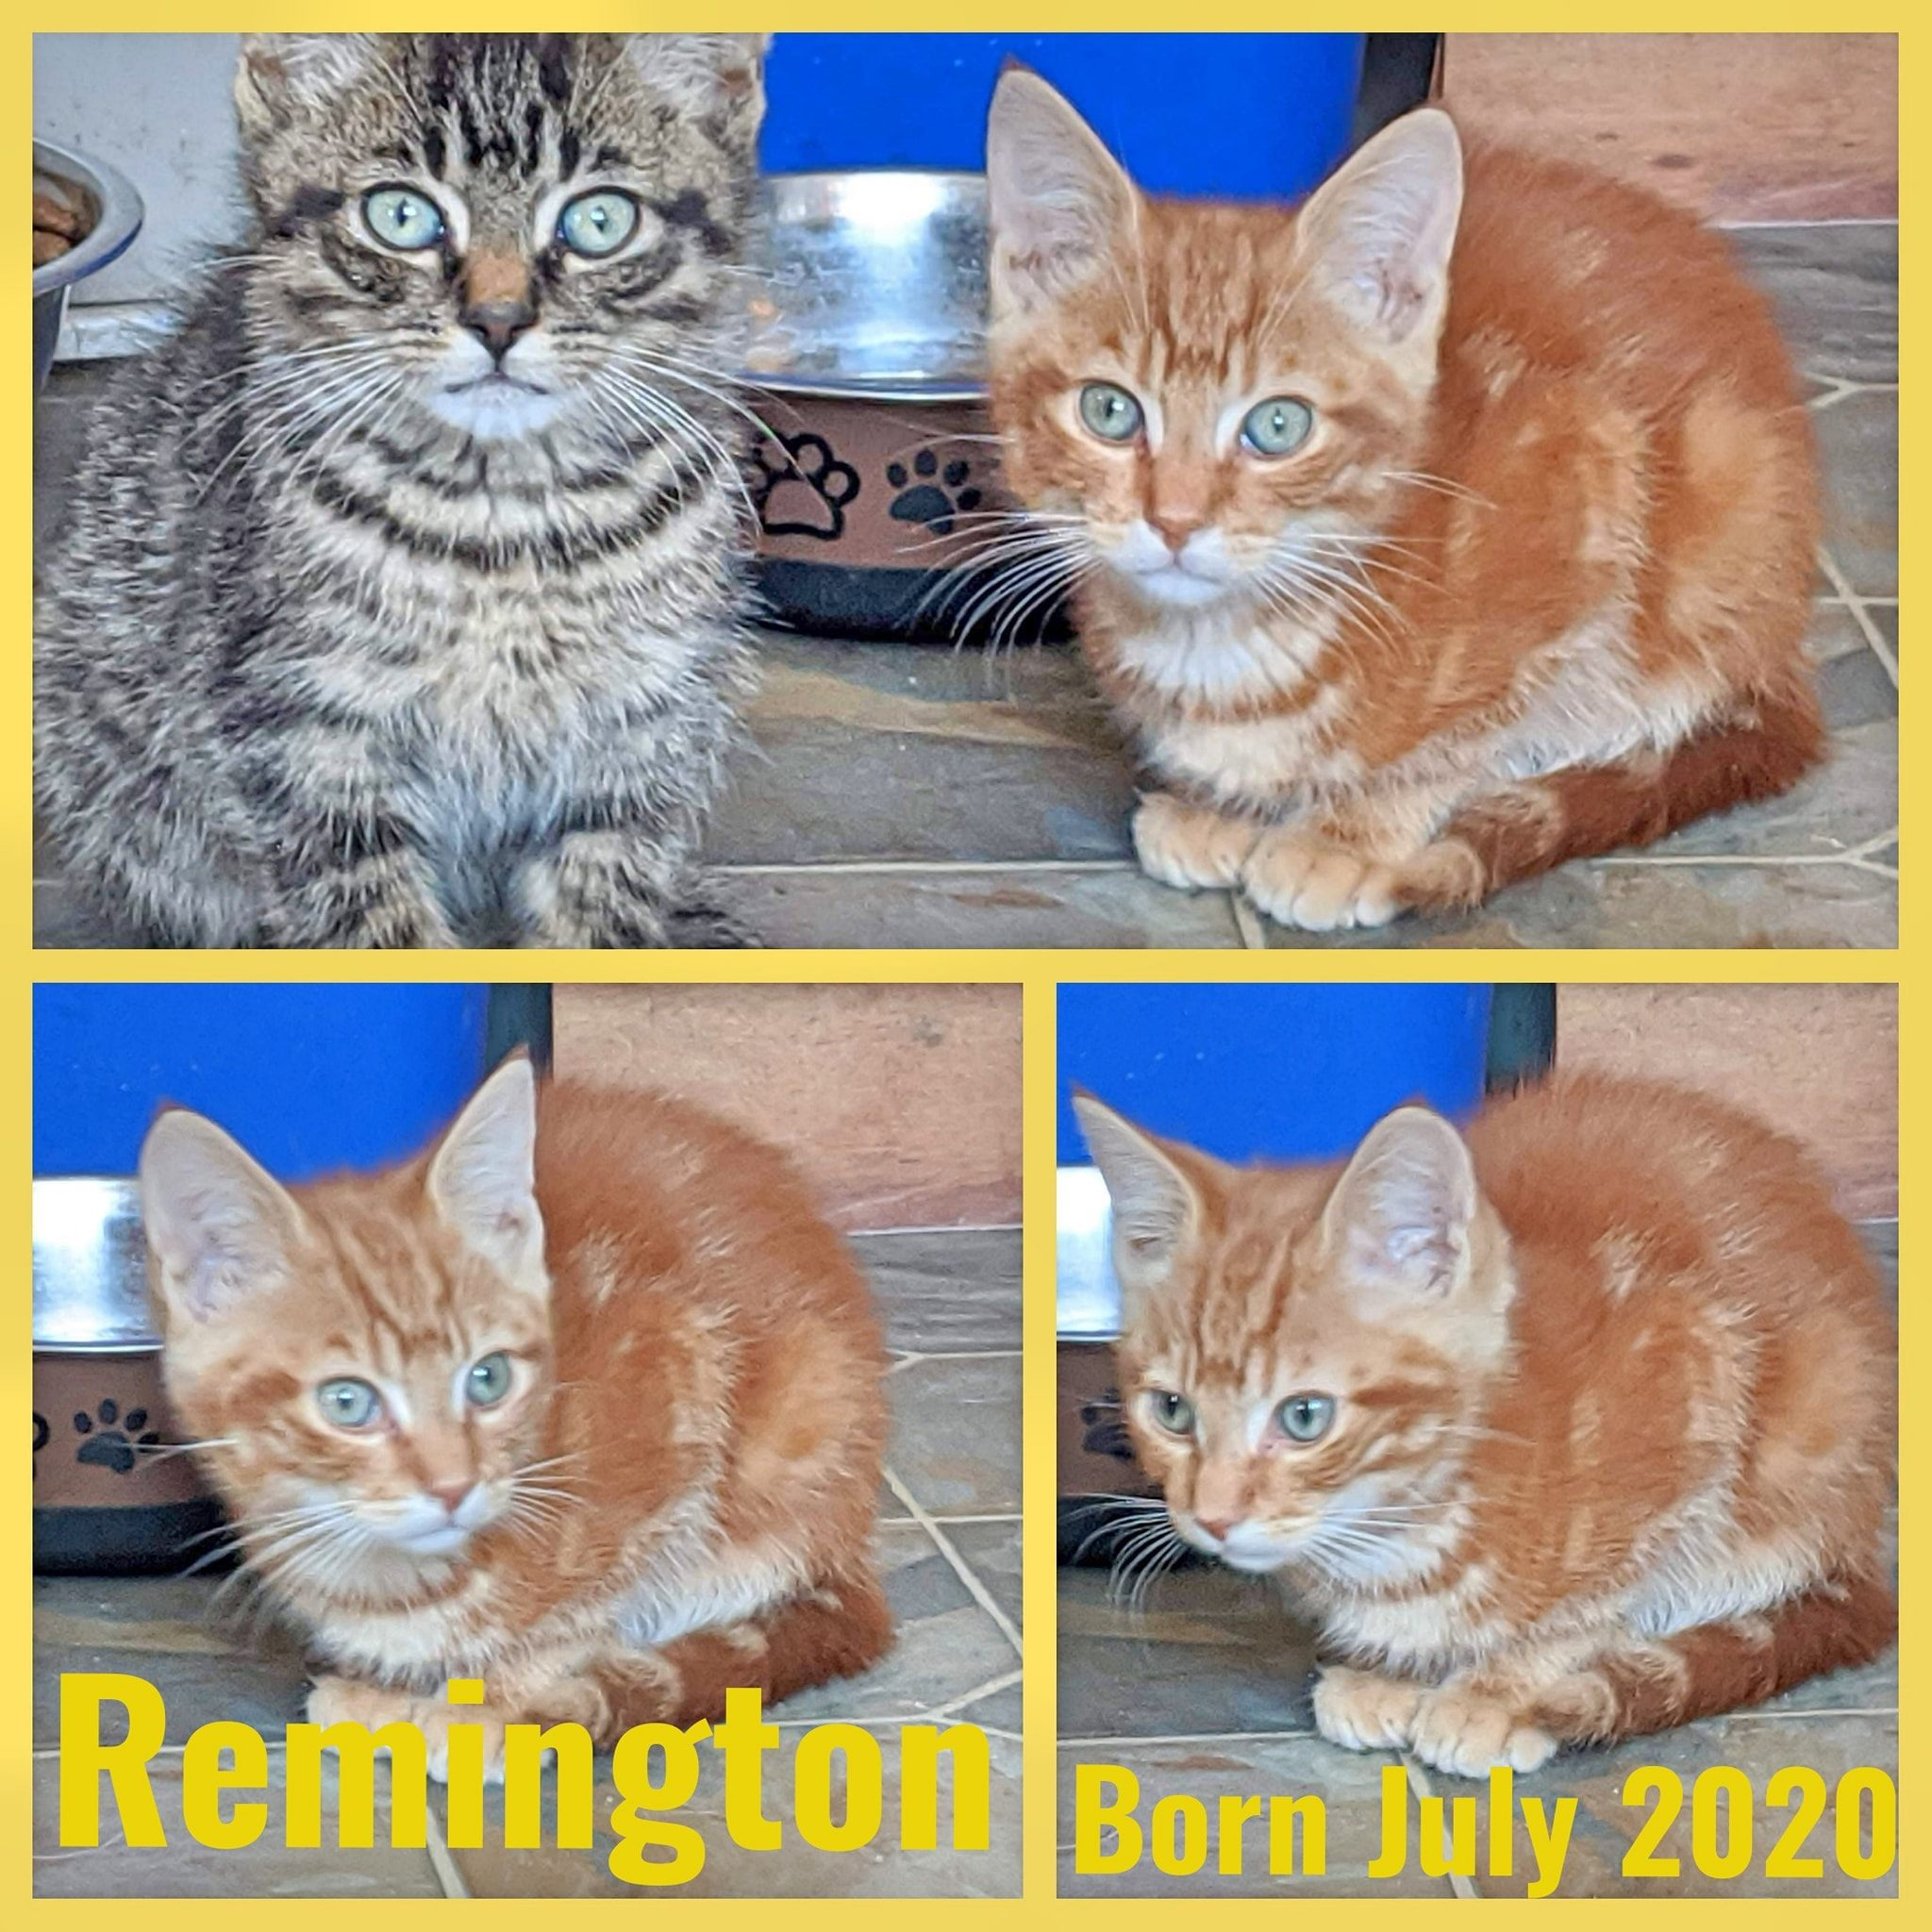 Remington-Male-Born in July 2020